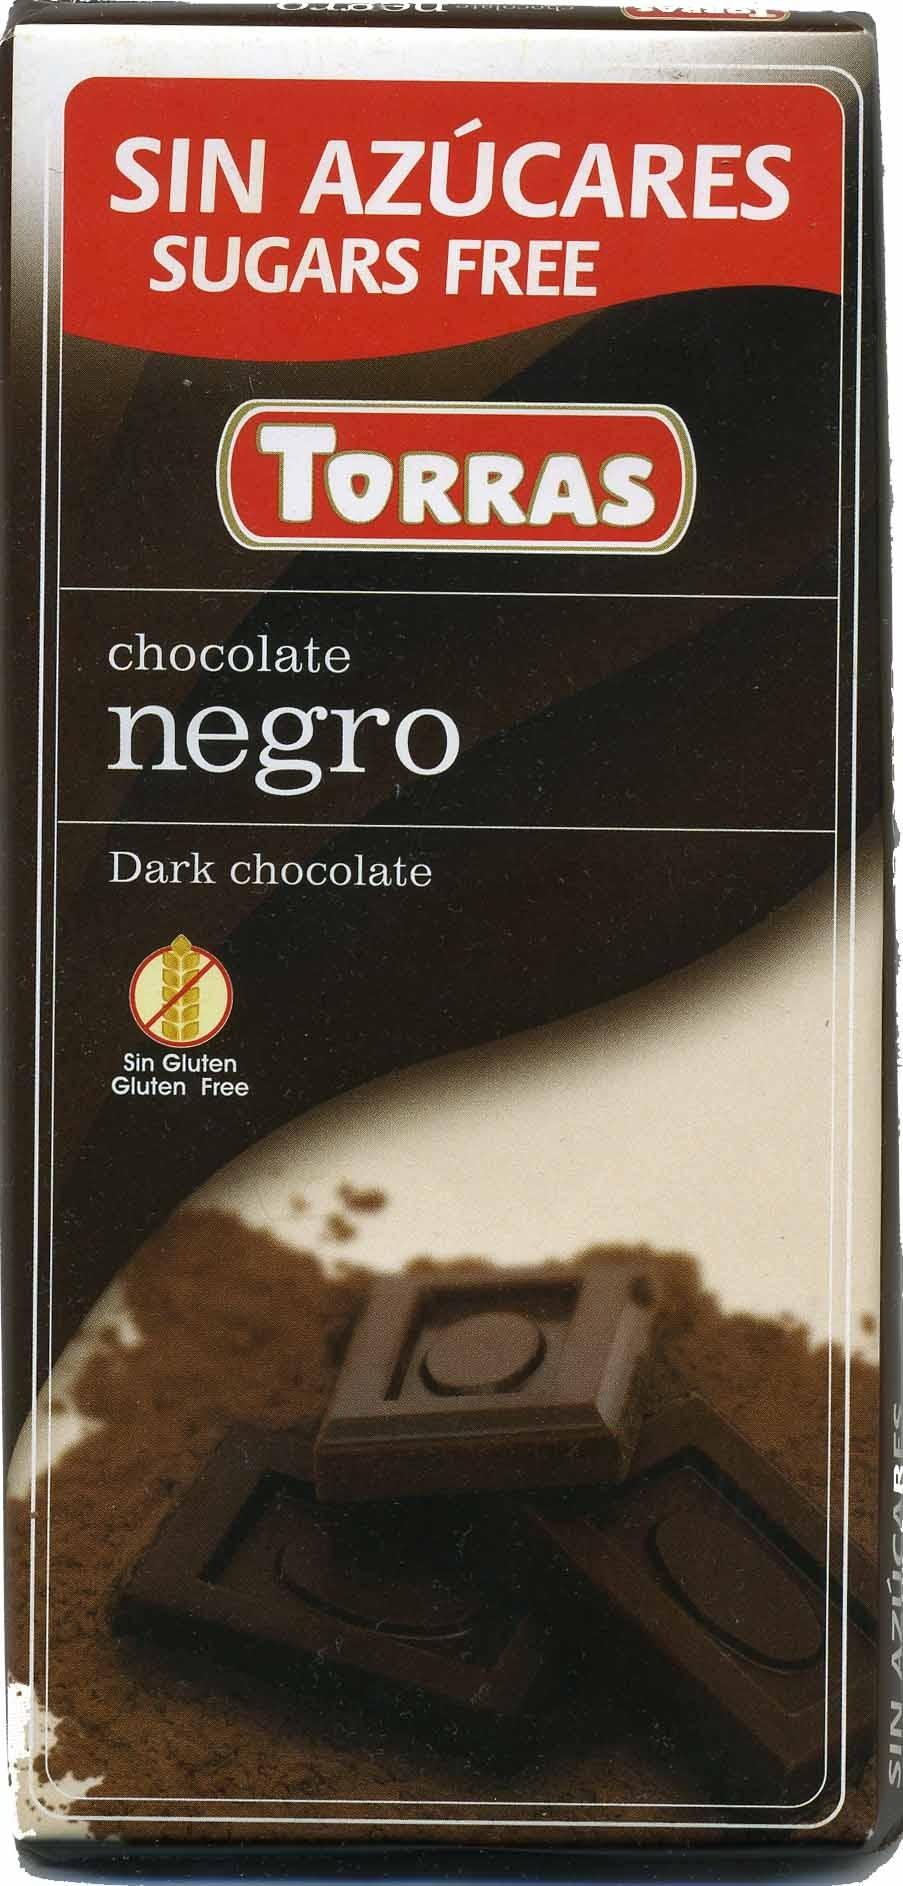 Tableta de chocolate negro edulcorado 52% cacao - Producte - es